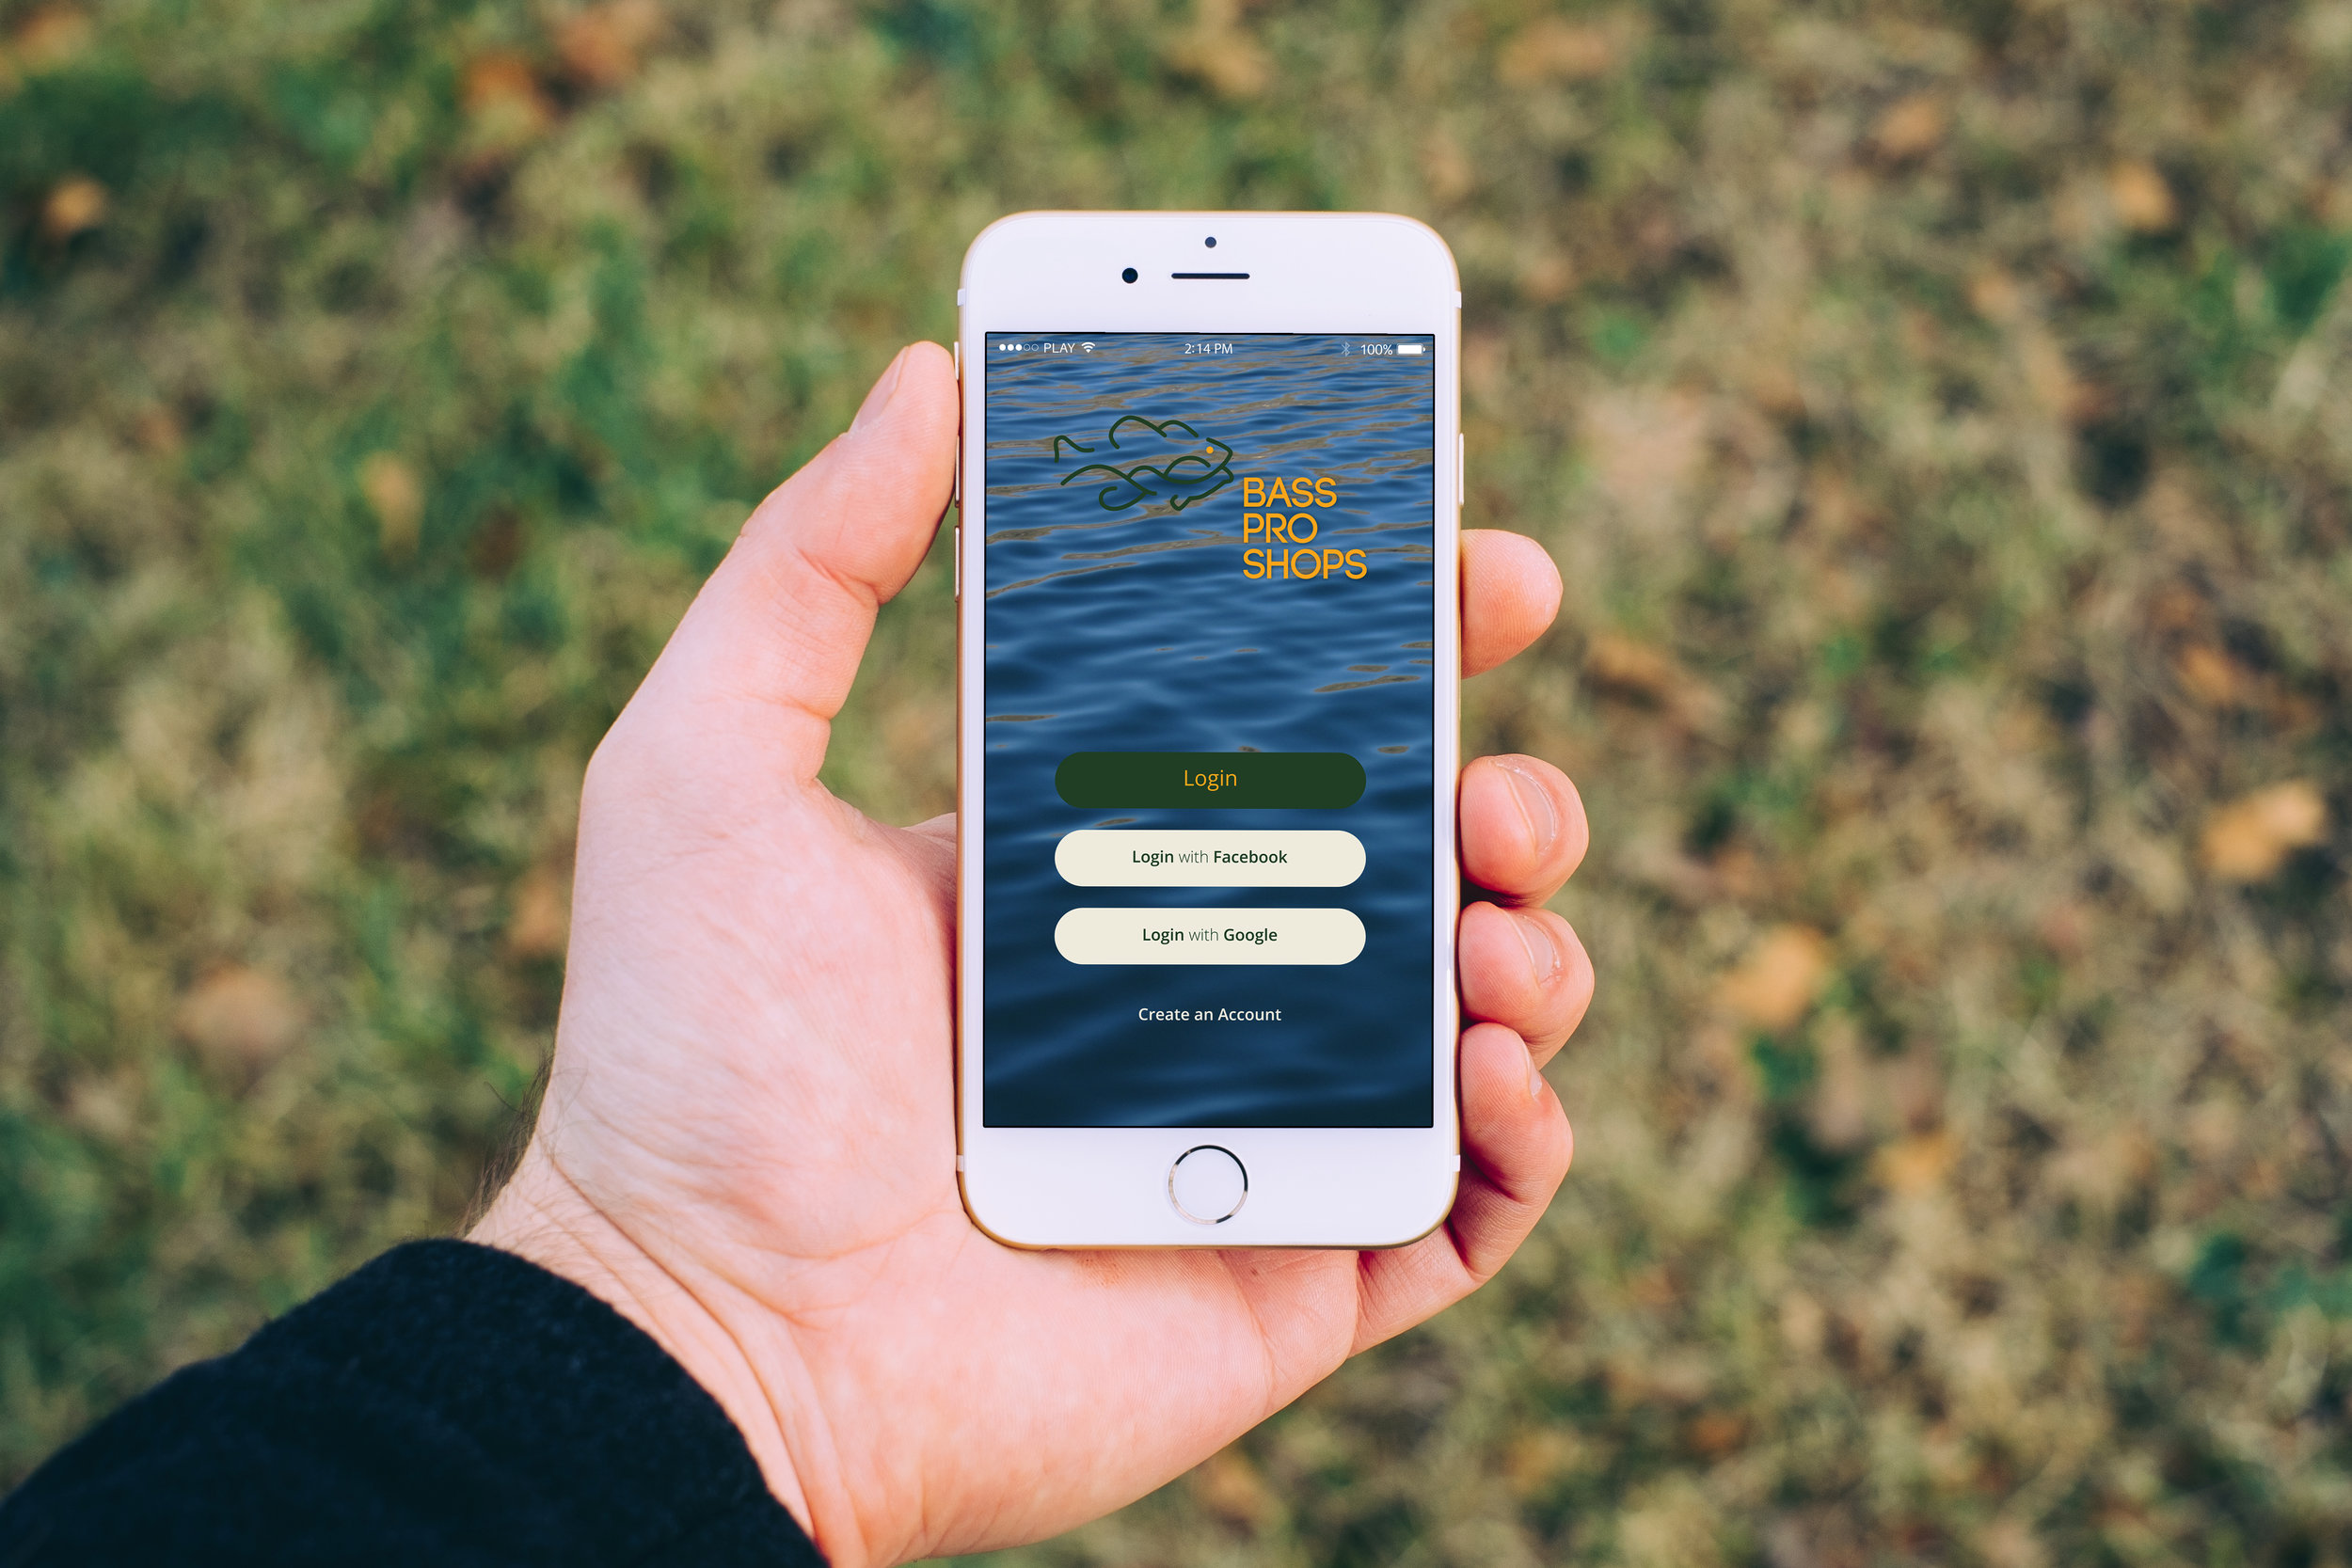 Bass Pro Shop mobile app dedicated to finding fishing spots in the area.